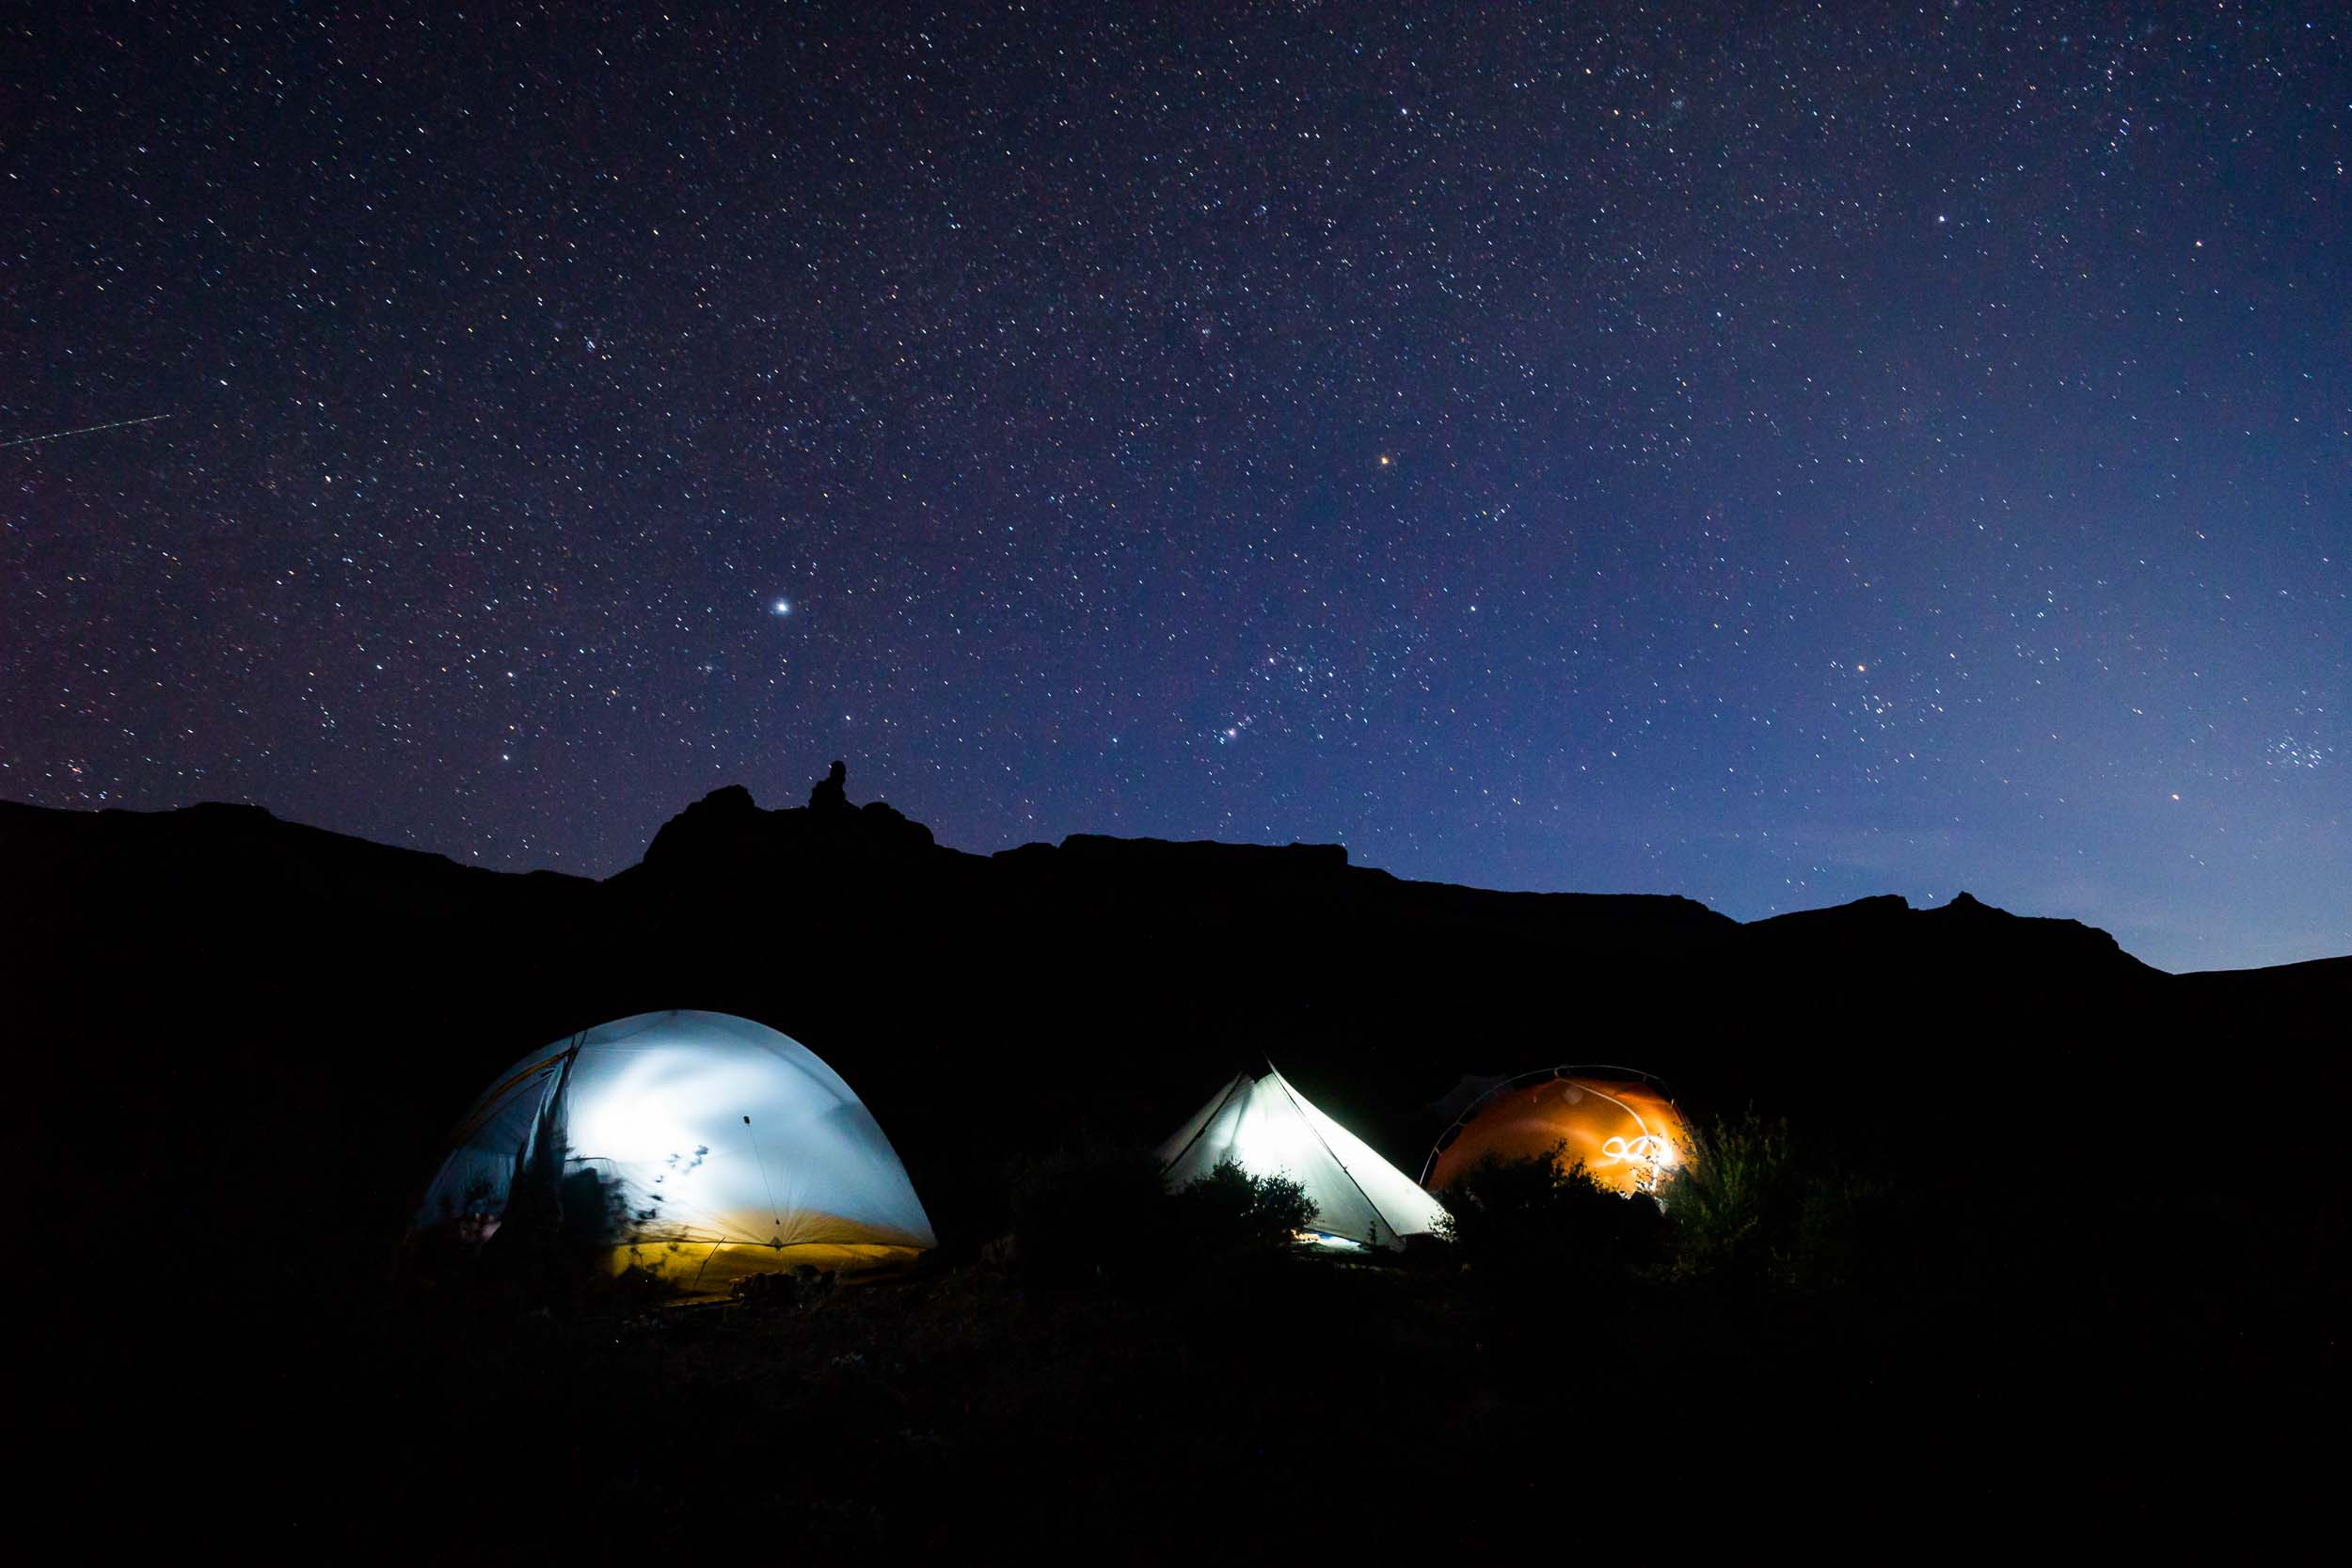 Grand Canyon National Park Backcountry Night Camp